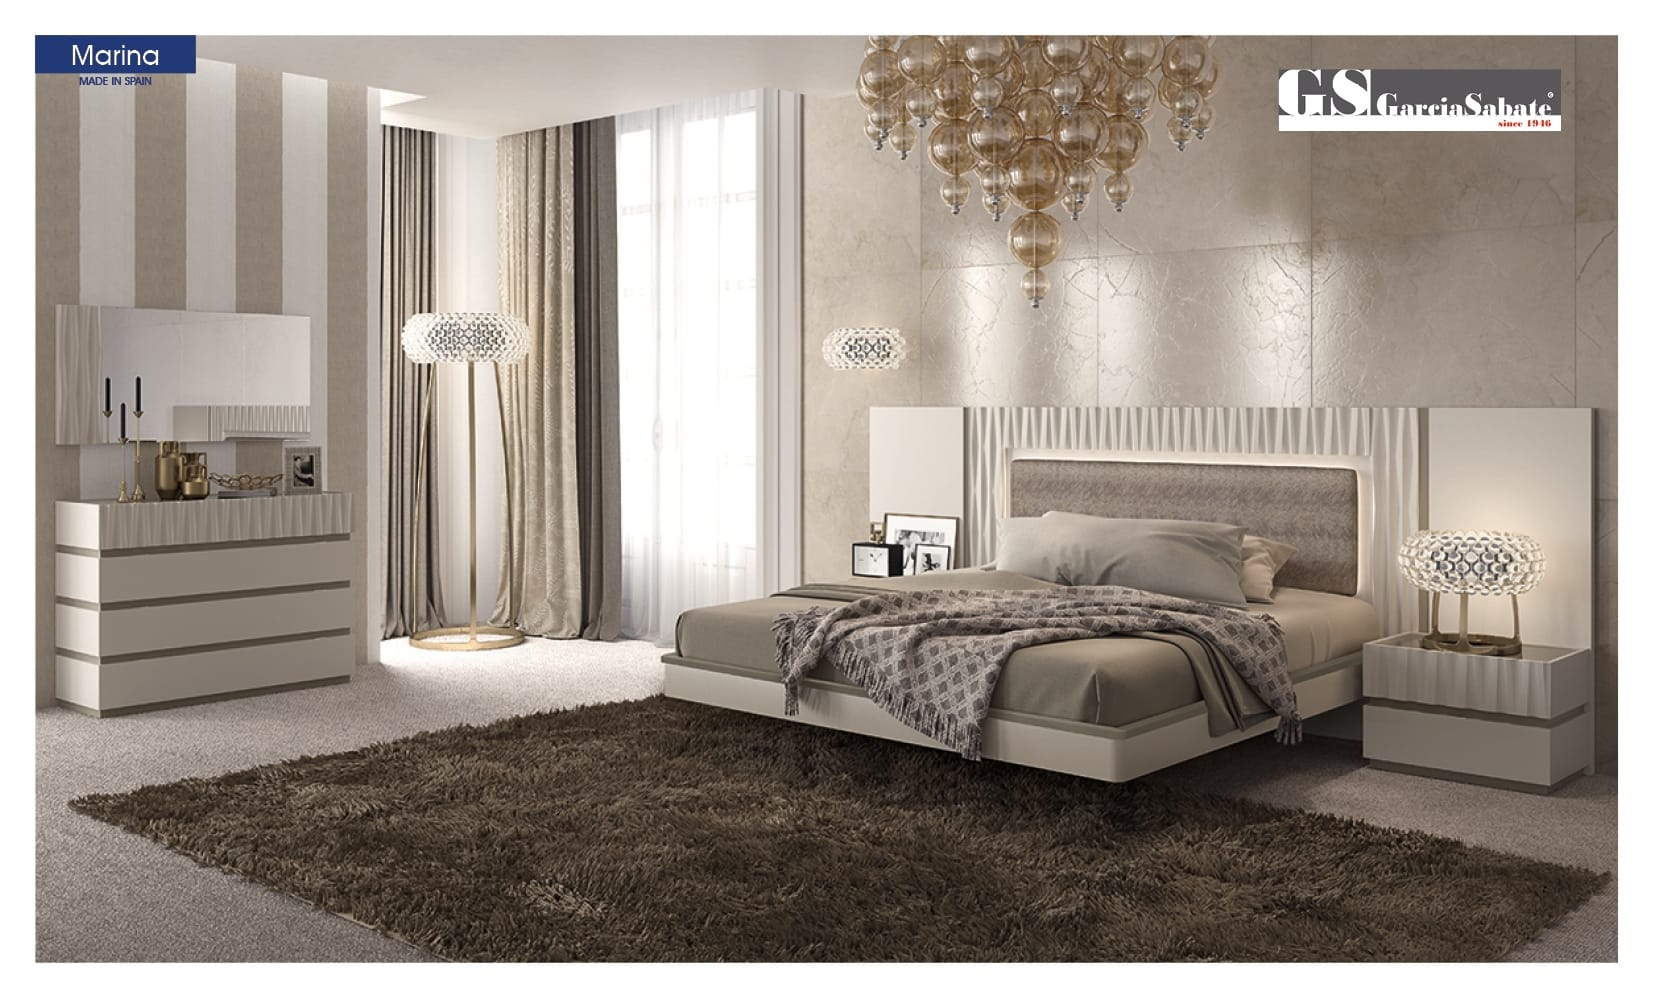 Marina White Bedroom Set by ESF